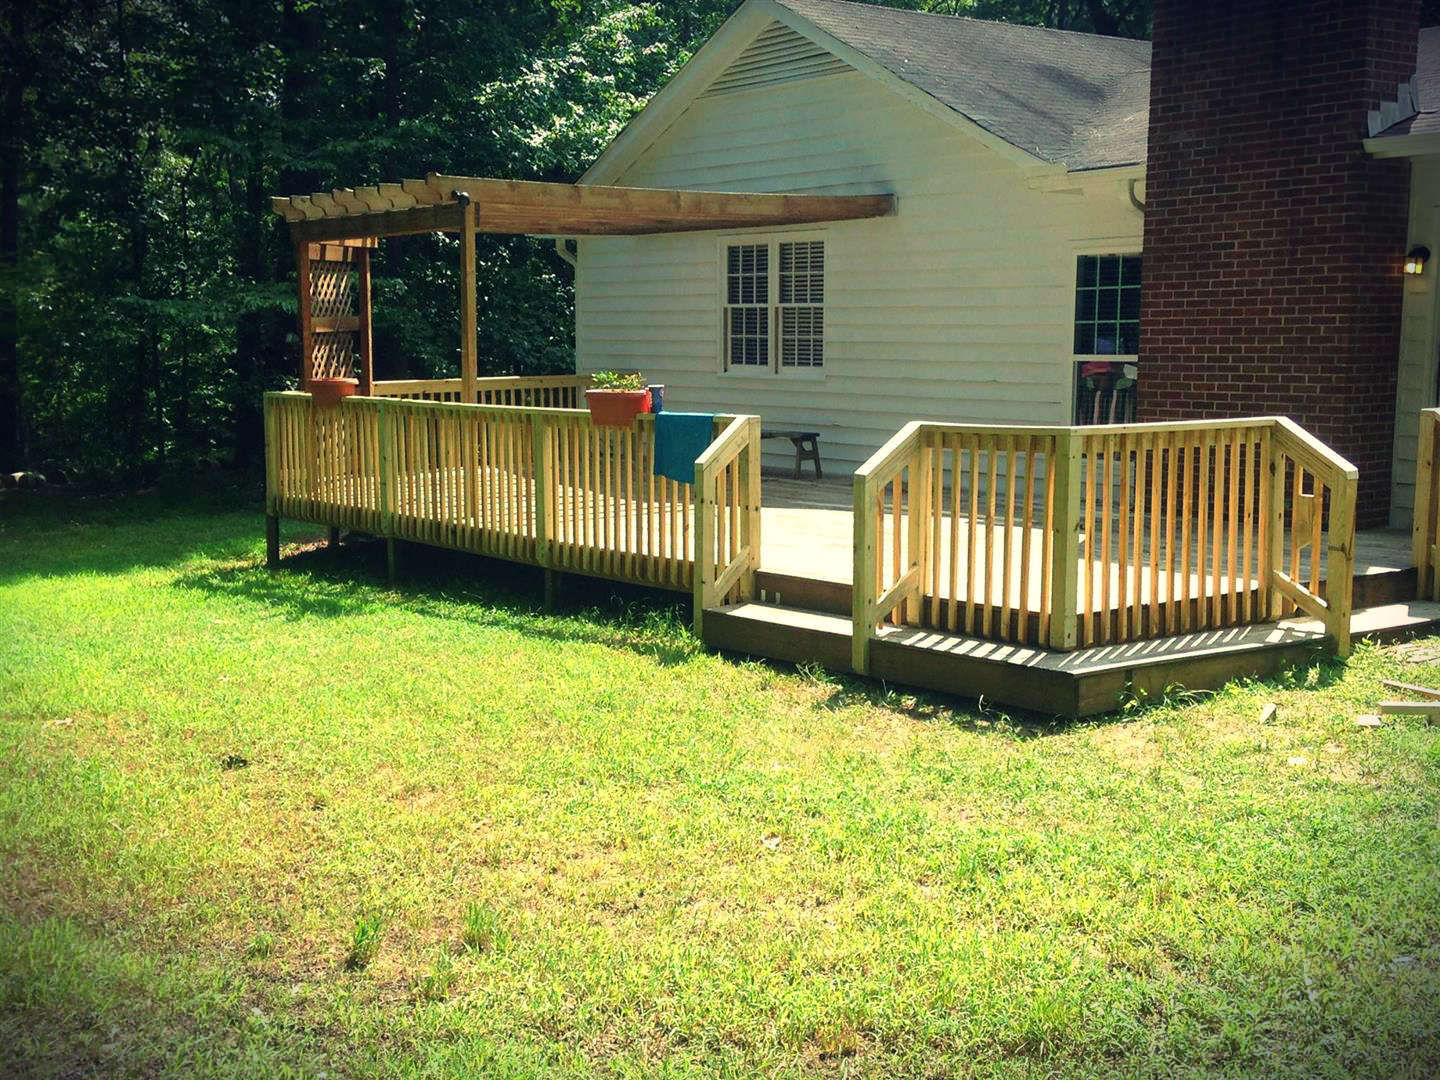 Deck and pergola constructed off the rear of a home.